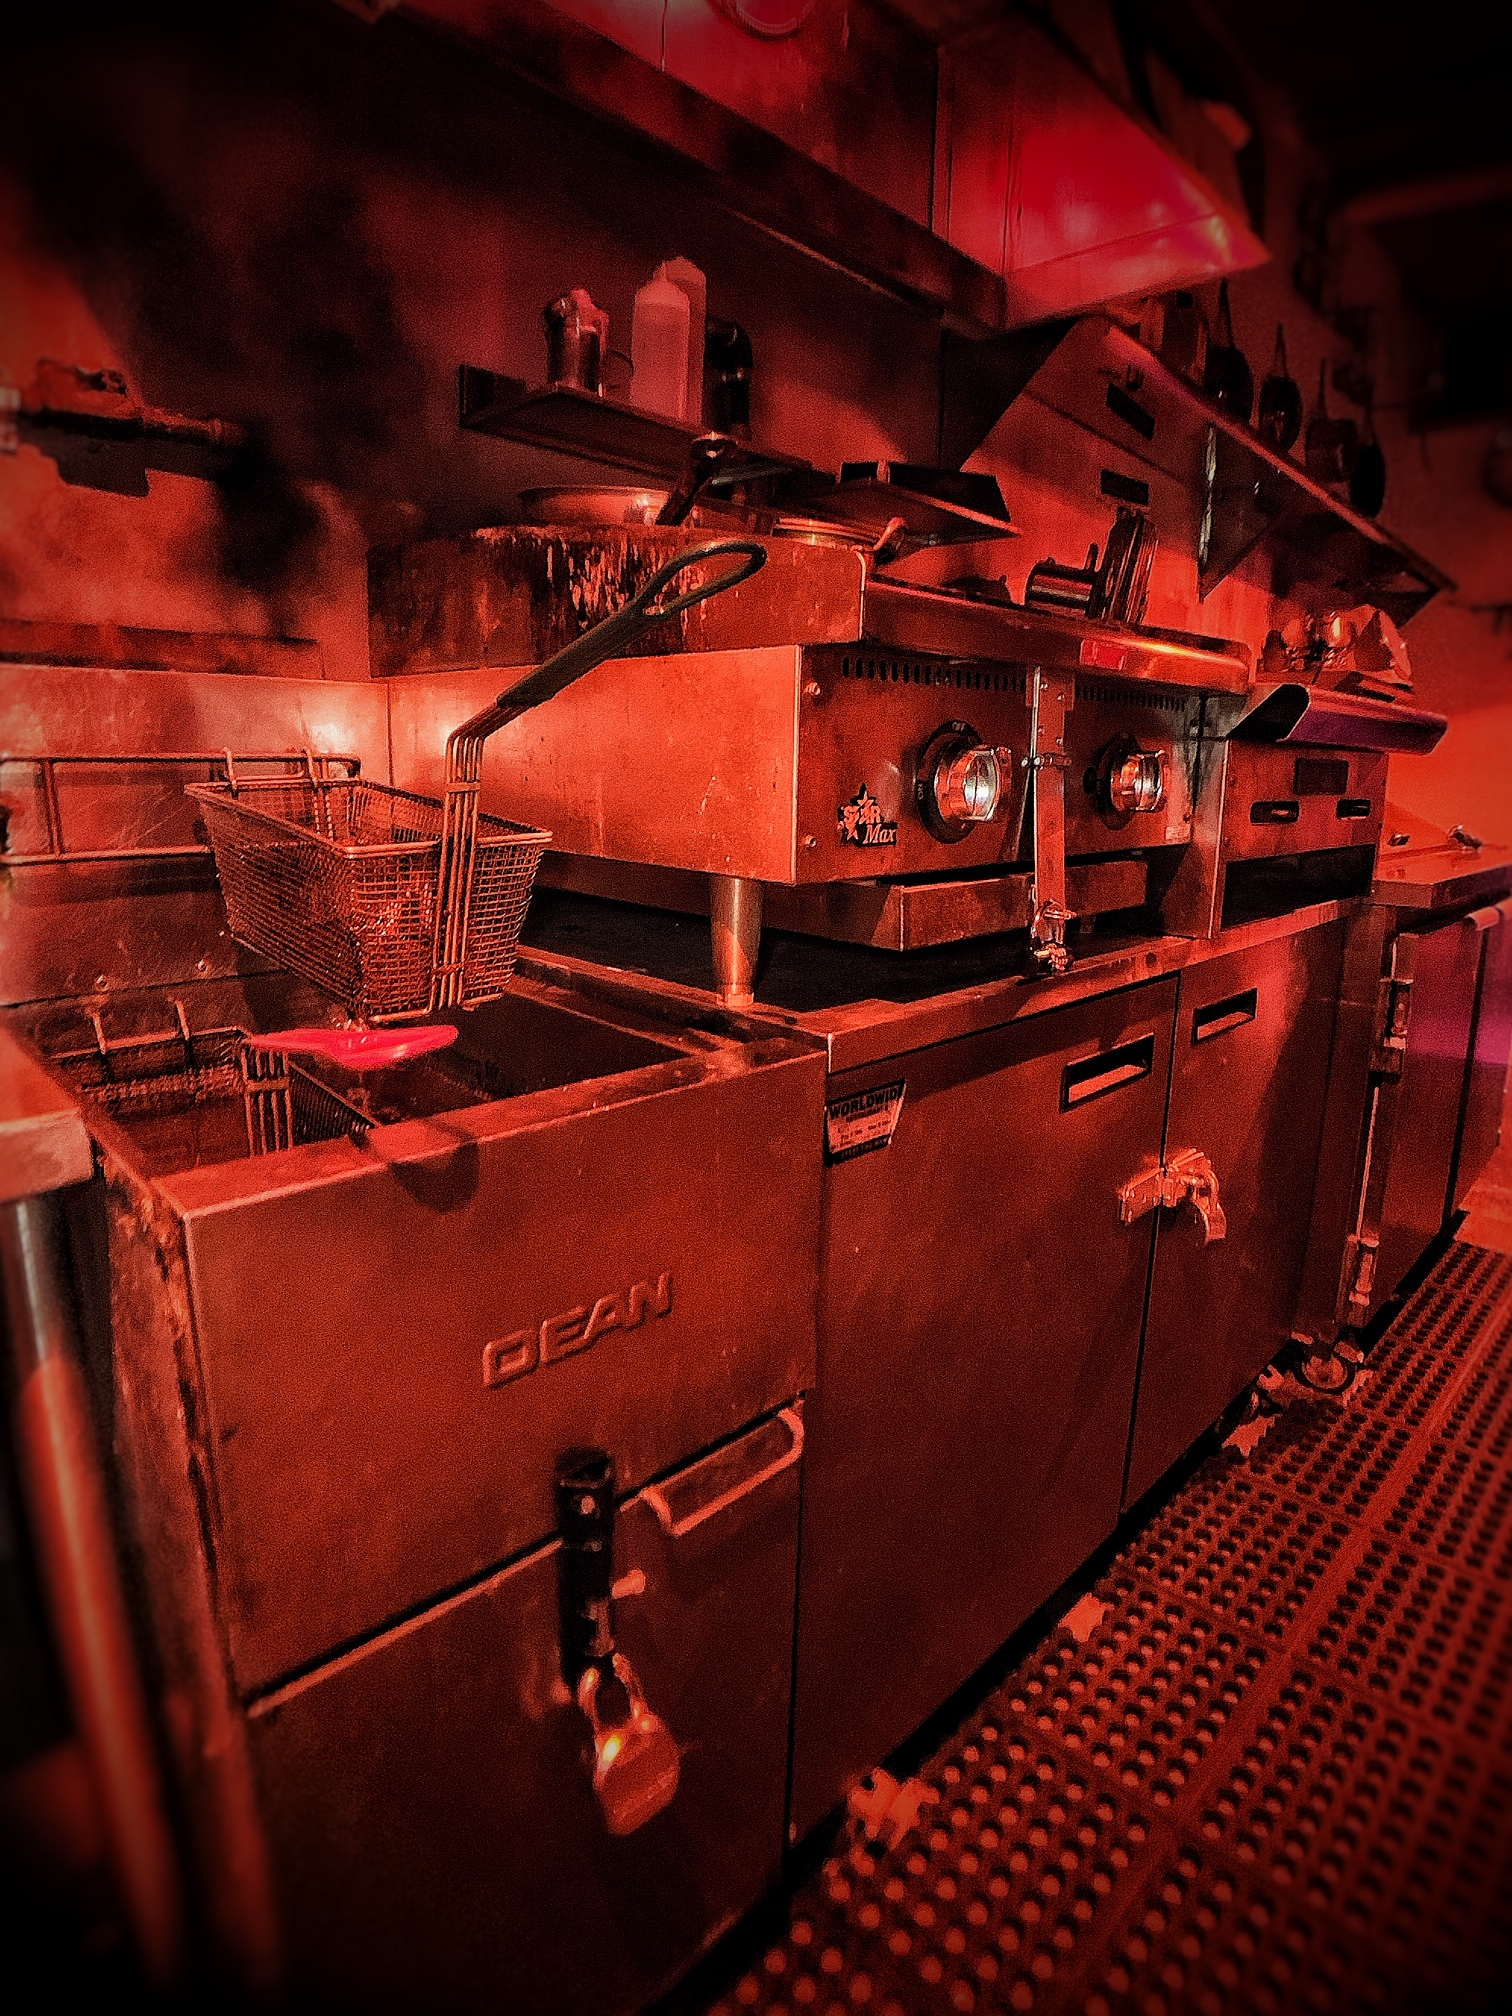 A red-tinted photo of a grimy, derelict-looking restaurant kitchen.